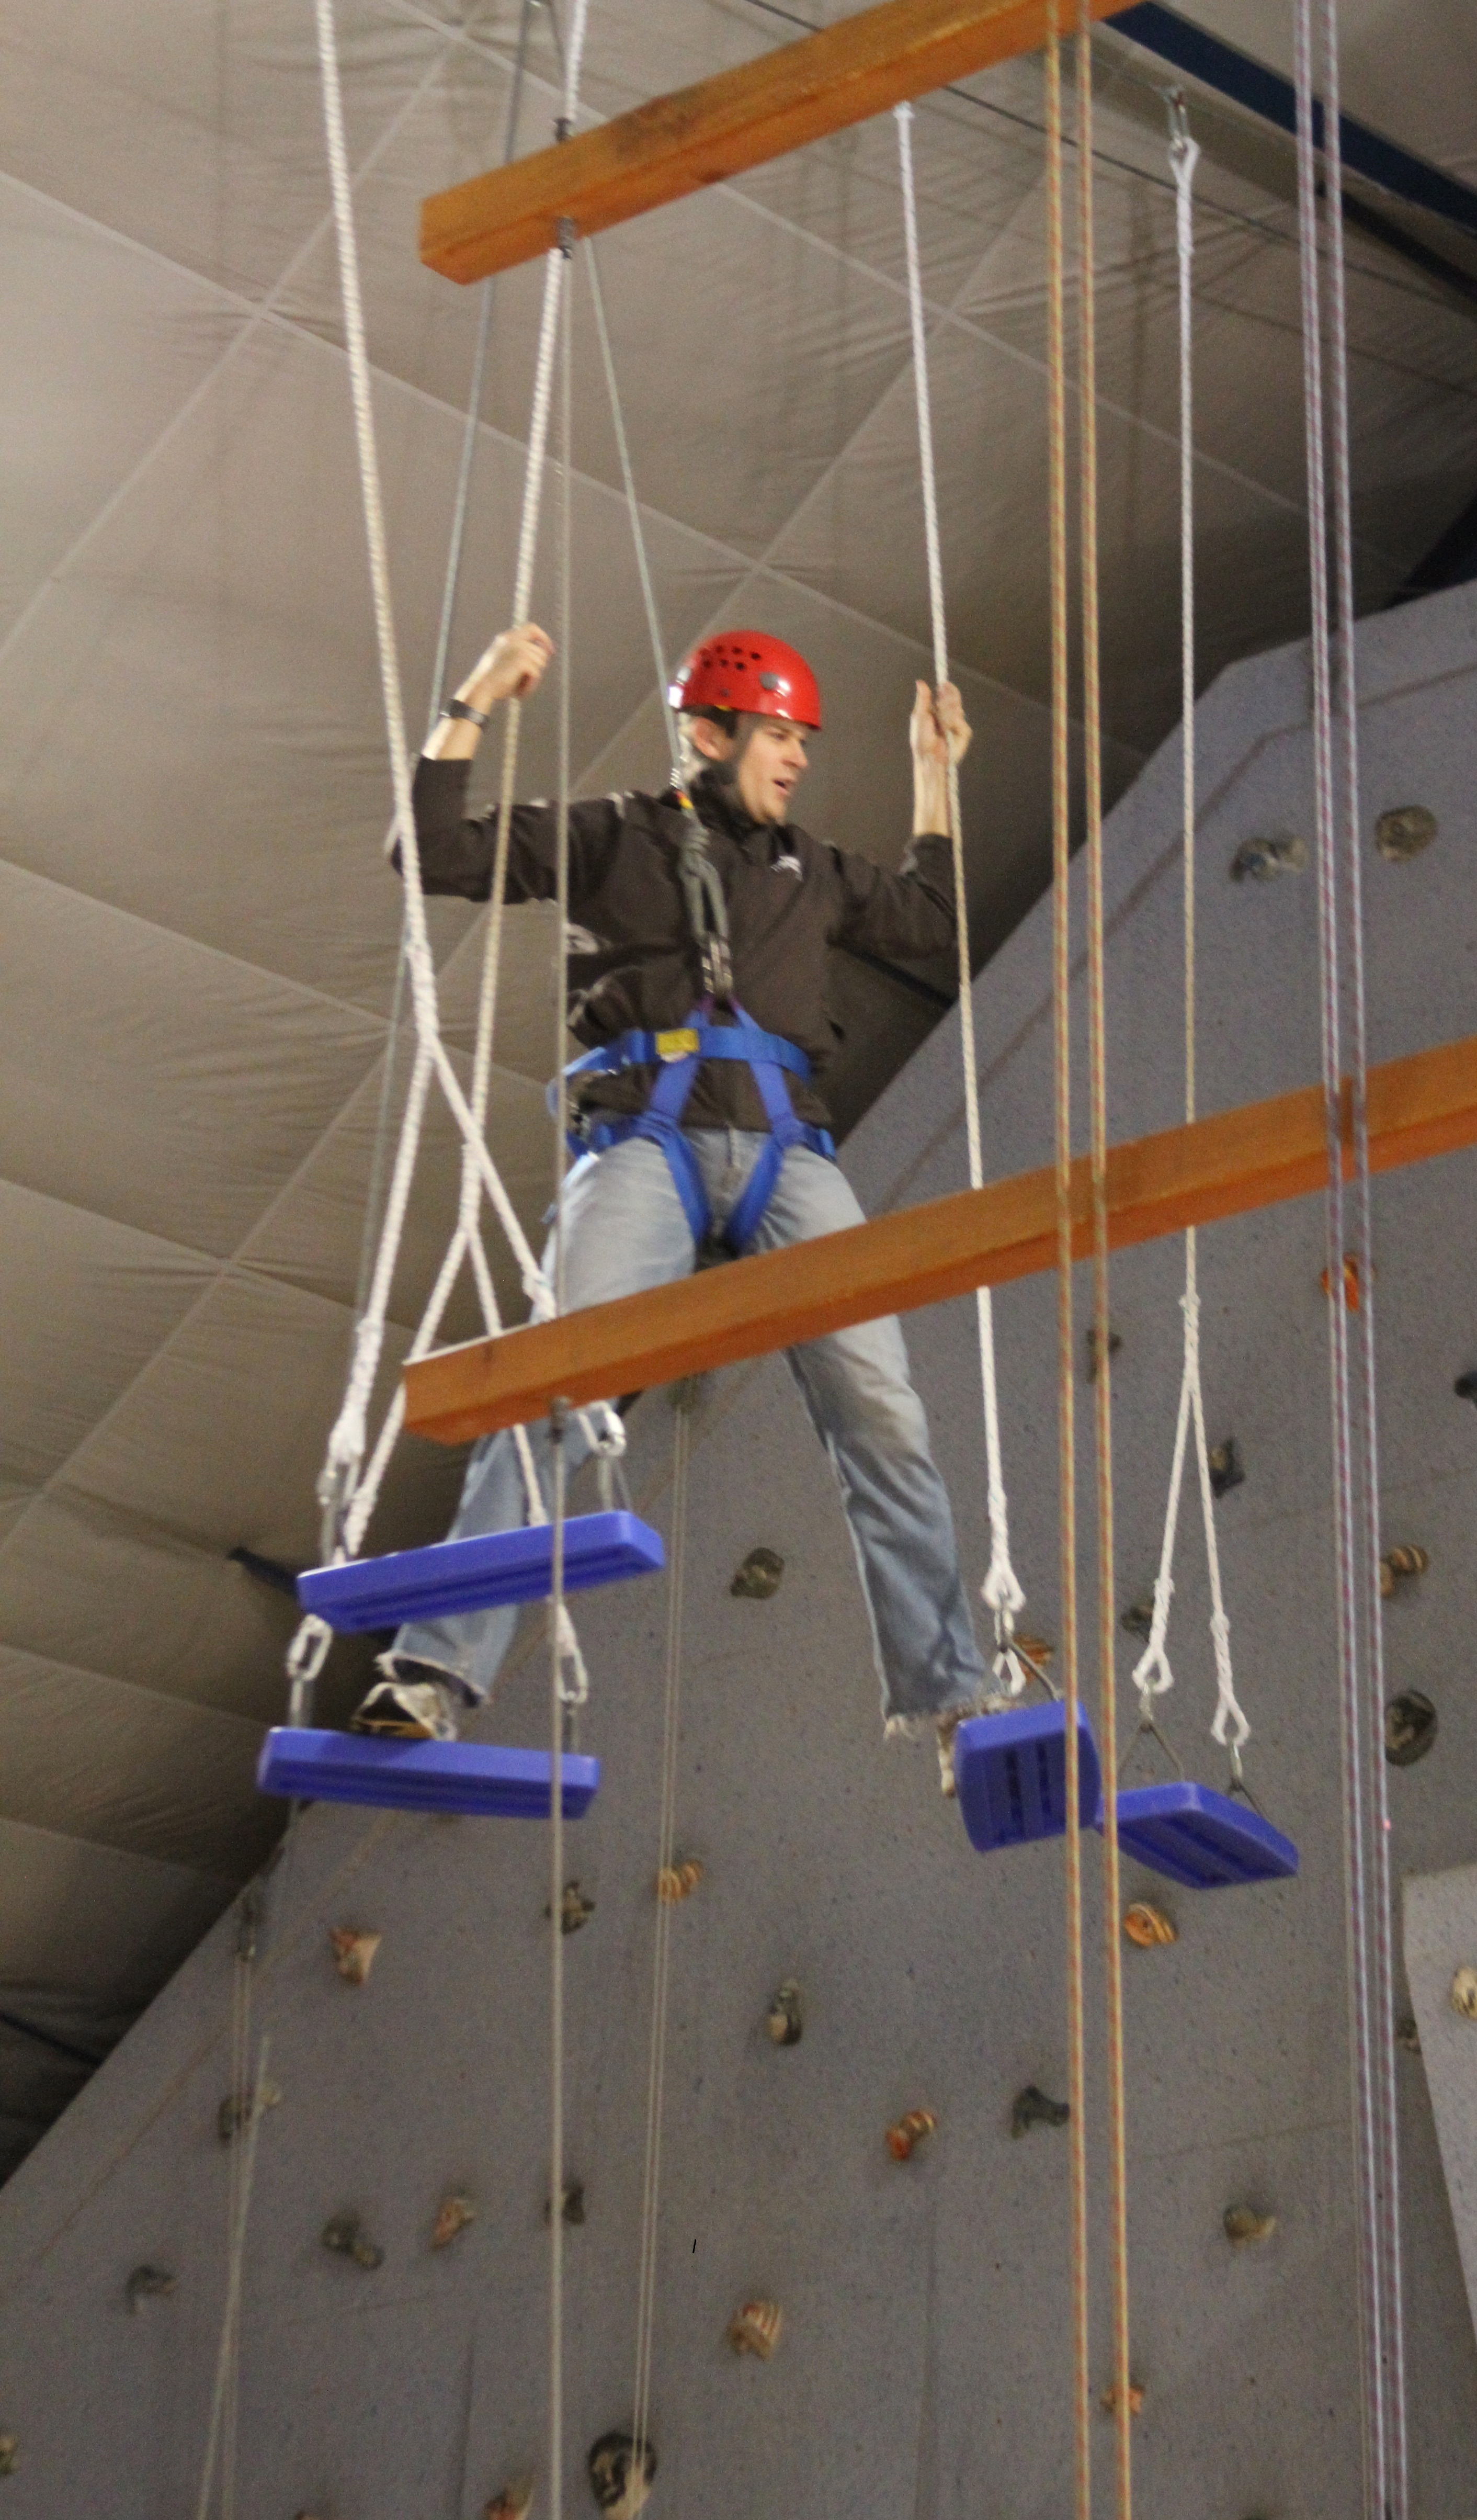 indoor challenge course near milwaukee